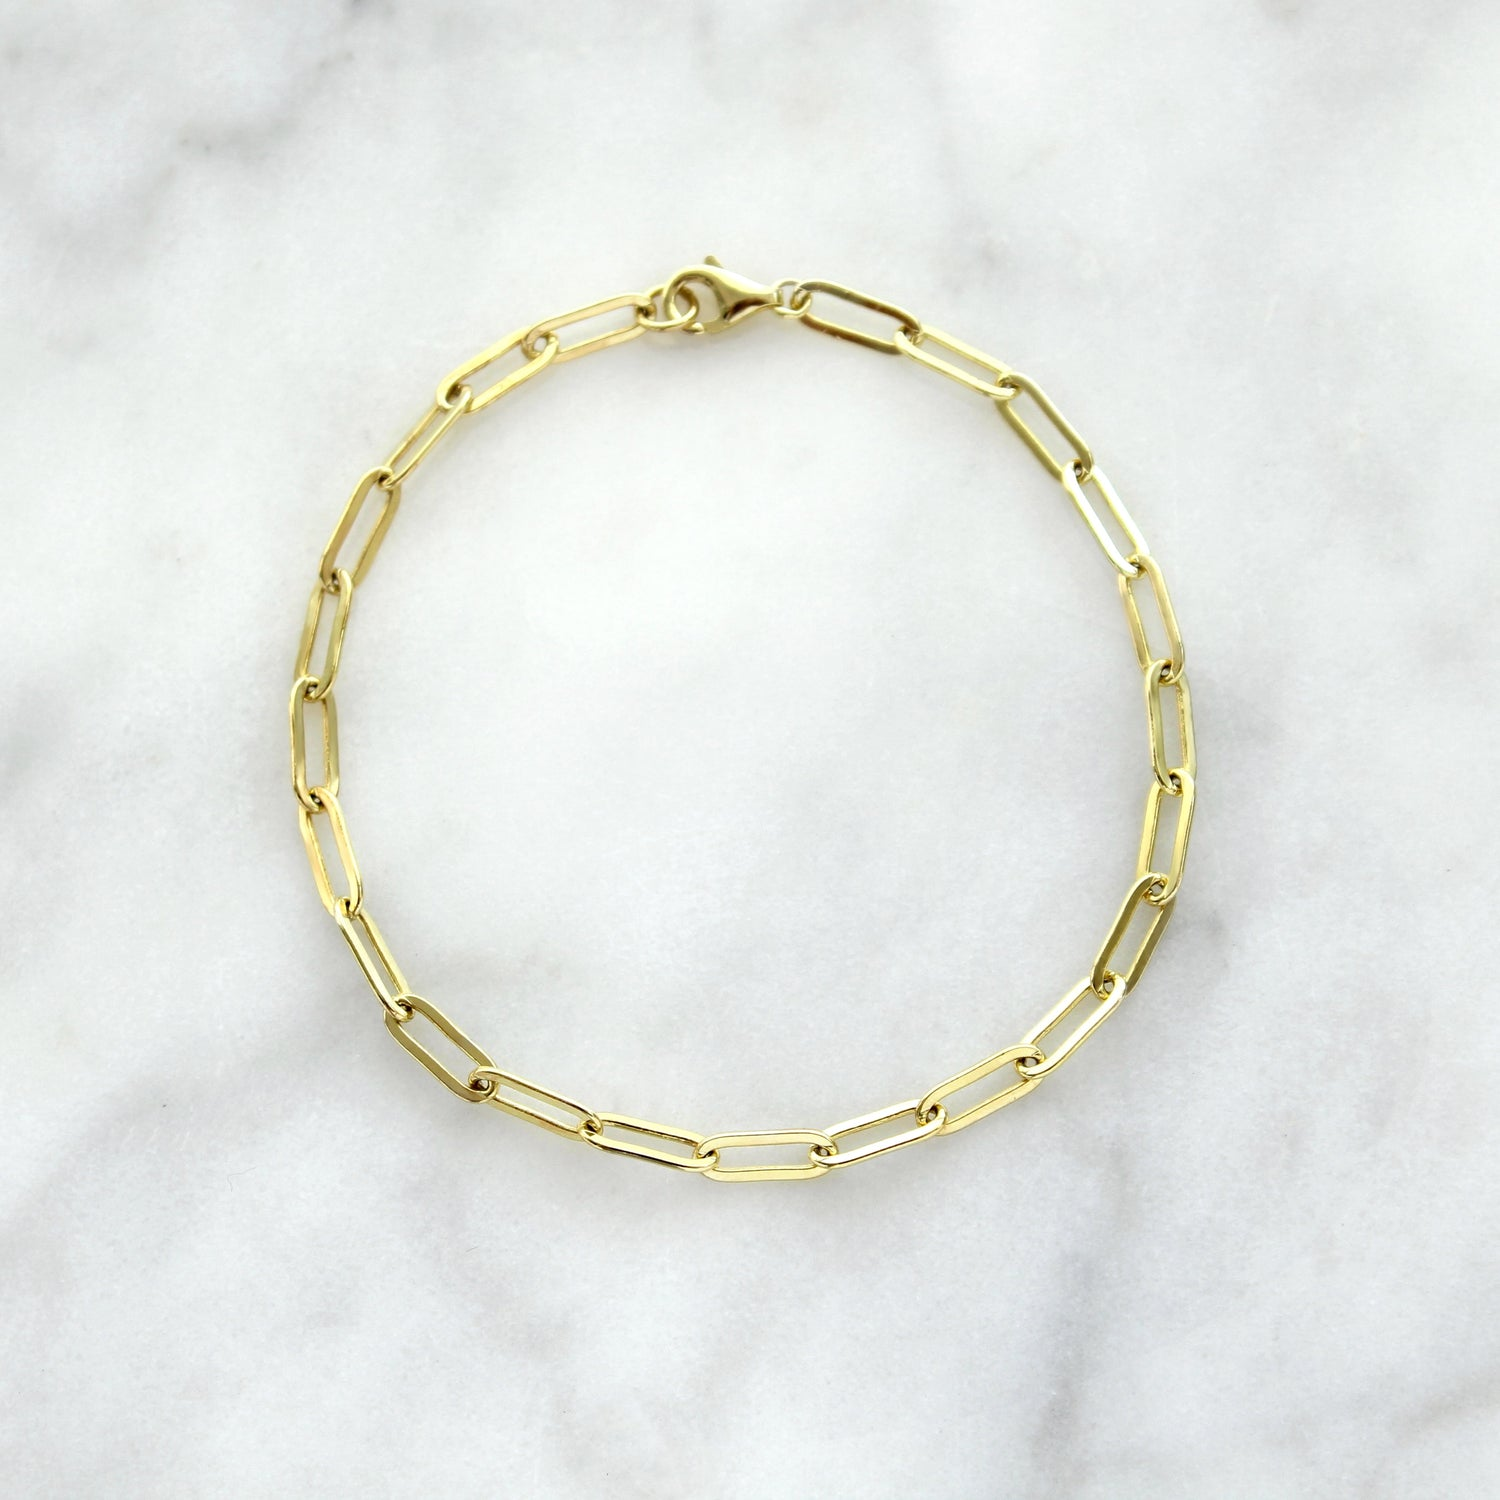 Light Oval Link Bracelet